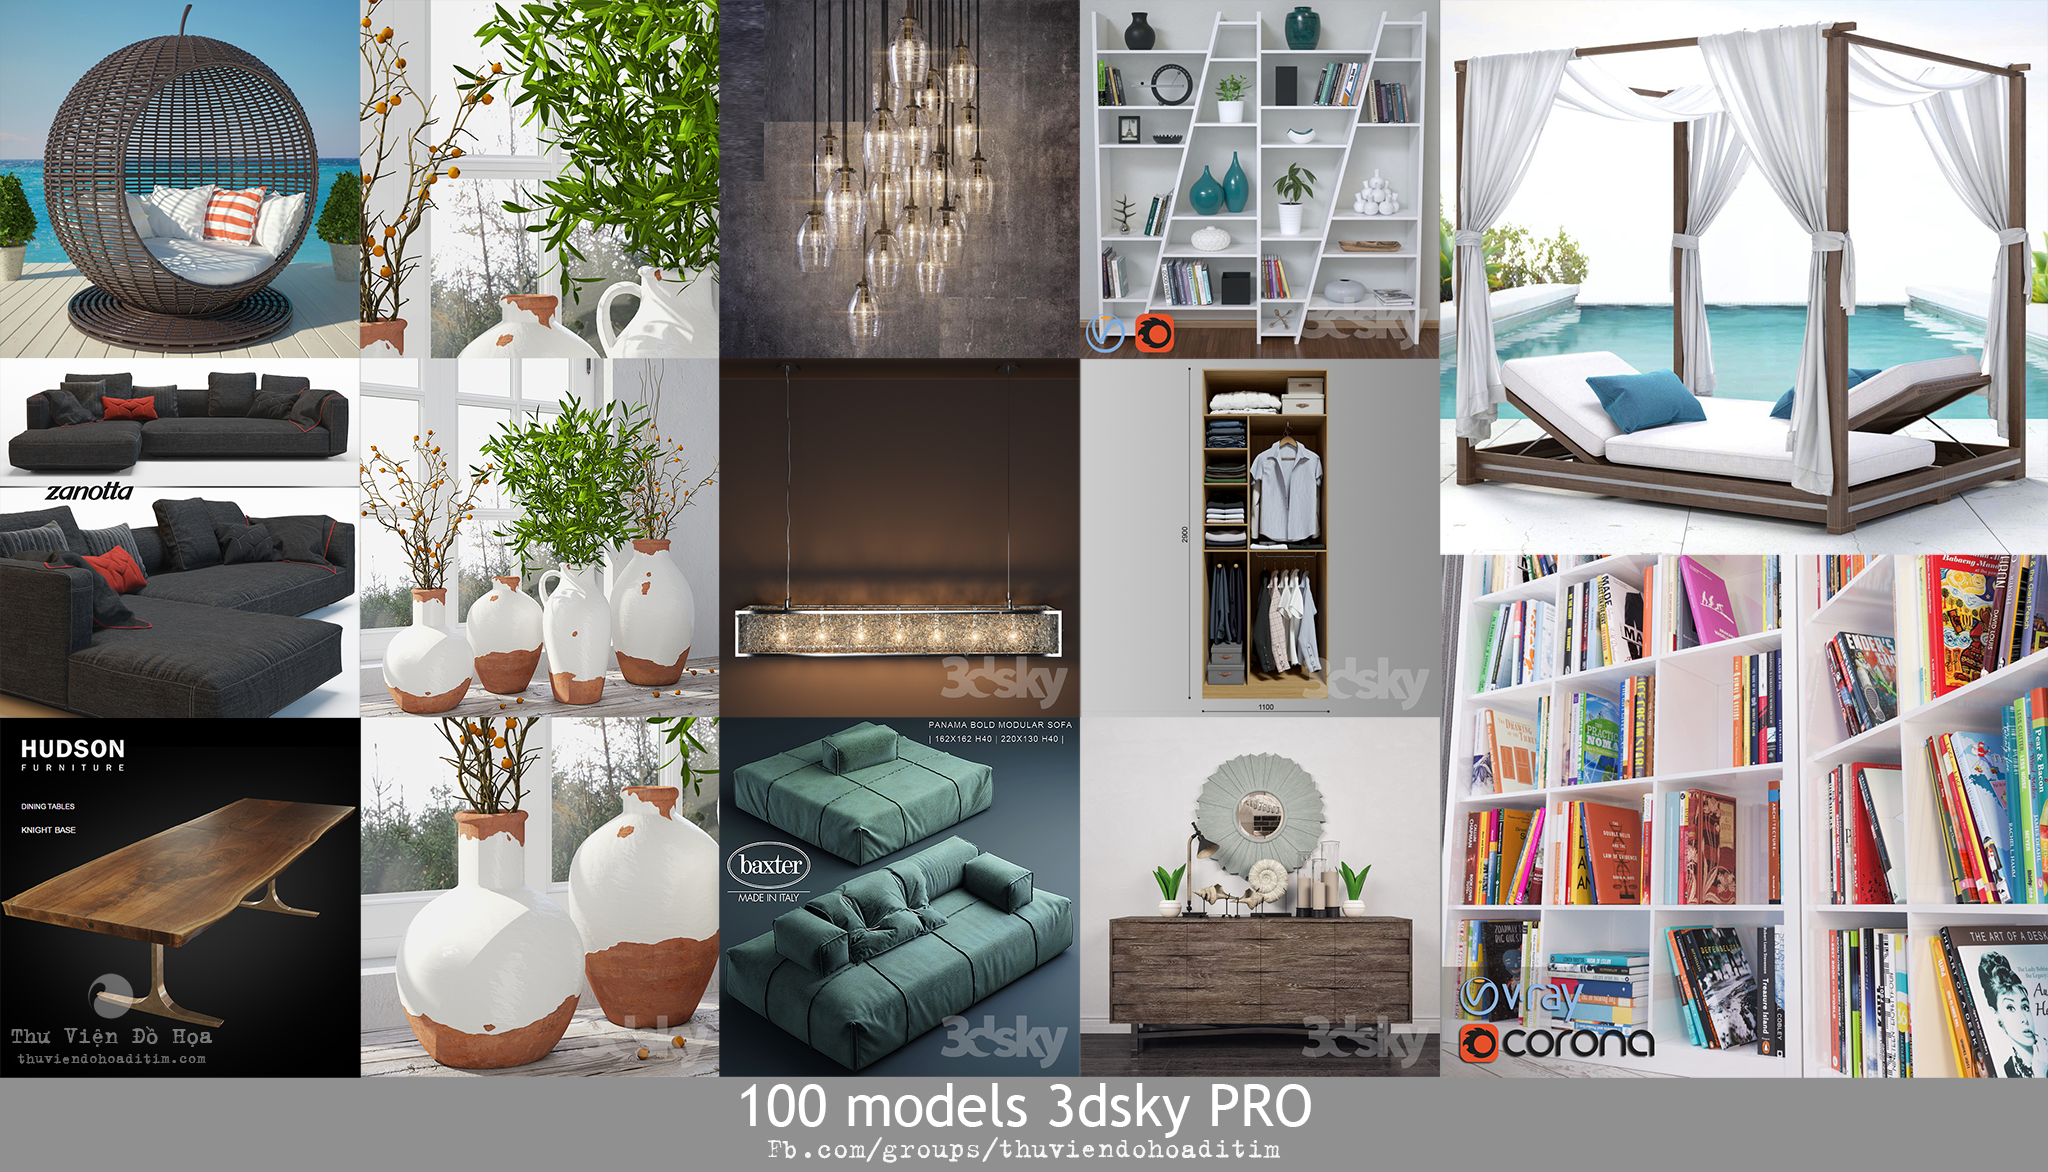 003_100 models 3dsky PRO | DOWNLOAD in 2019 | Gallery wall, Entryway